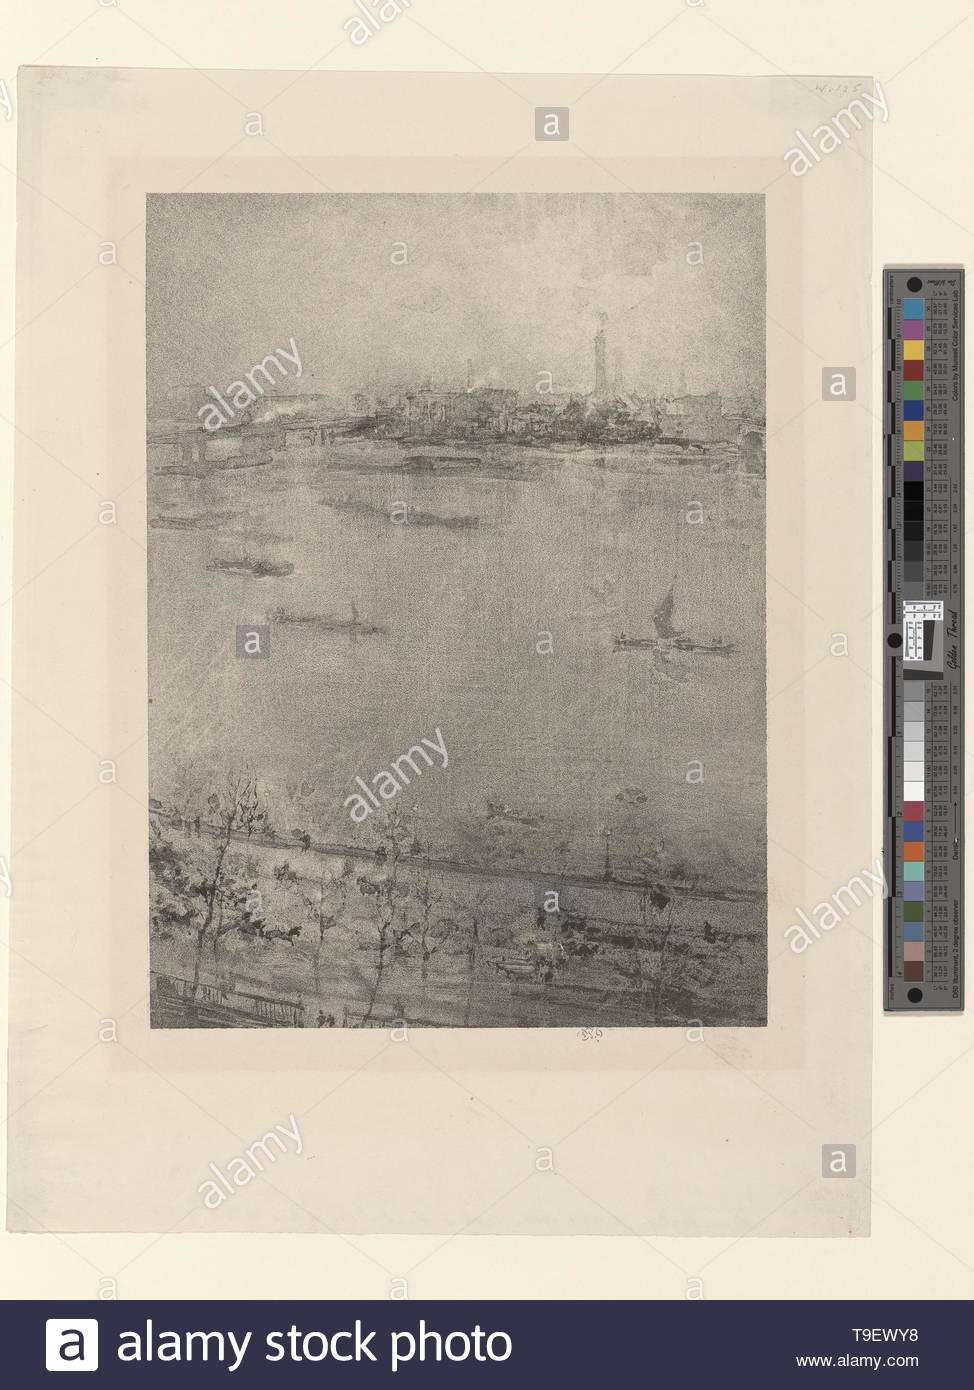 Whistler,JamesMcNeill(1834-1903)-The Thames - Stock Image